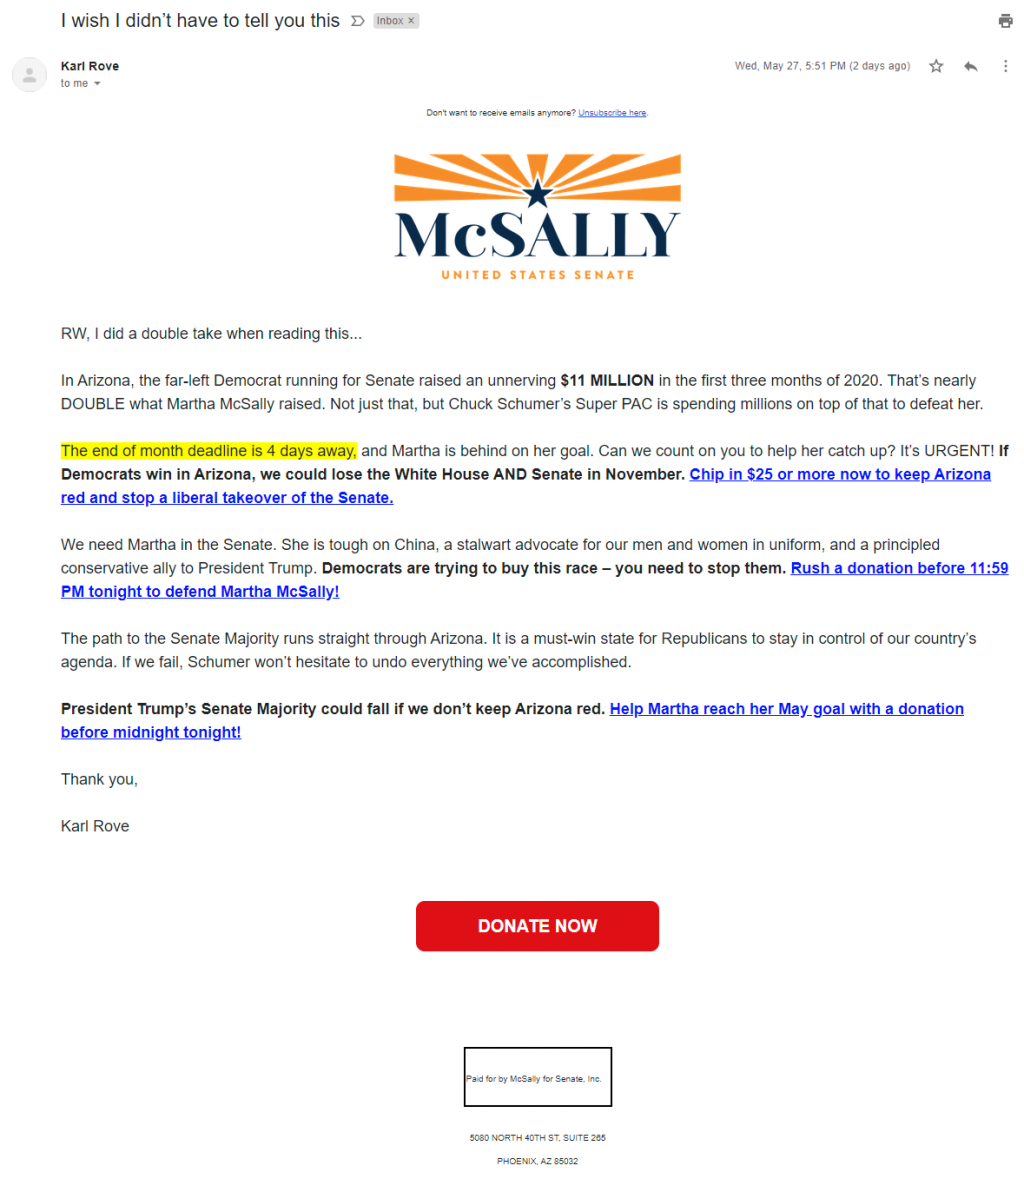 Karl Rove's email for Martha McSally